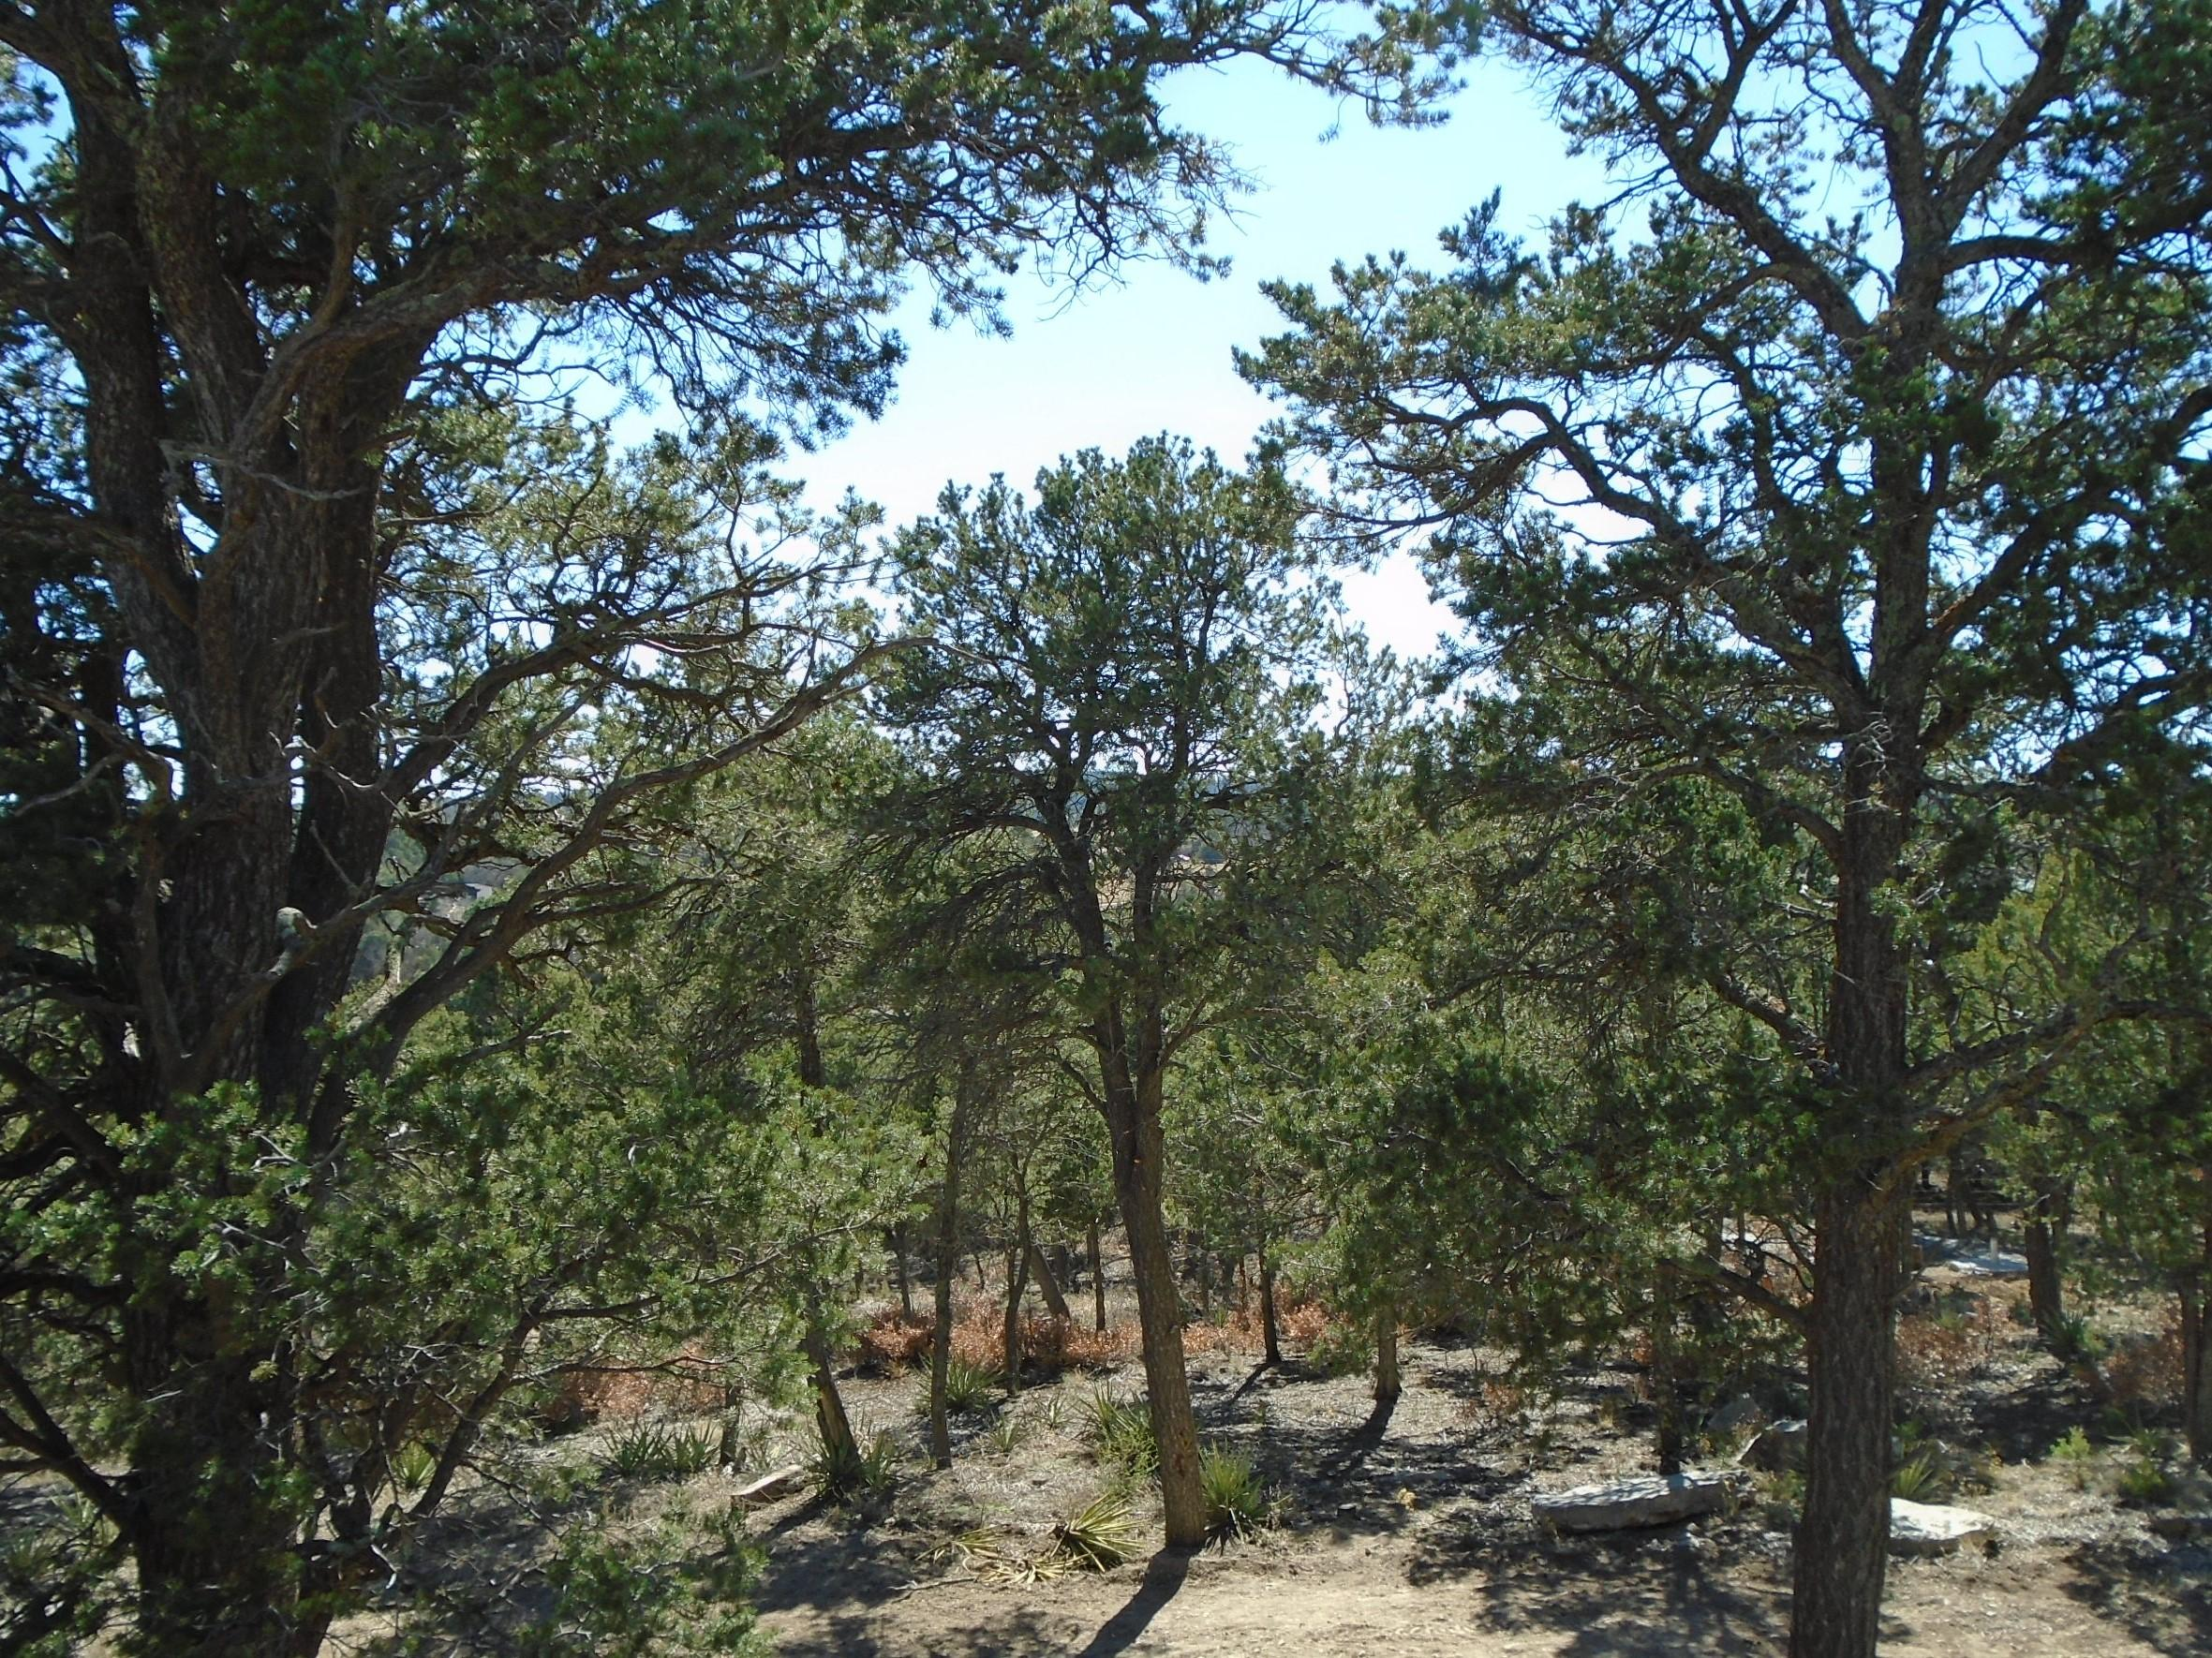 37 NM 217 Property Photo - Tijeras, NM real estate listing